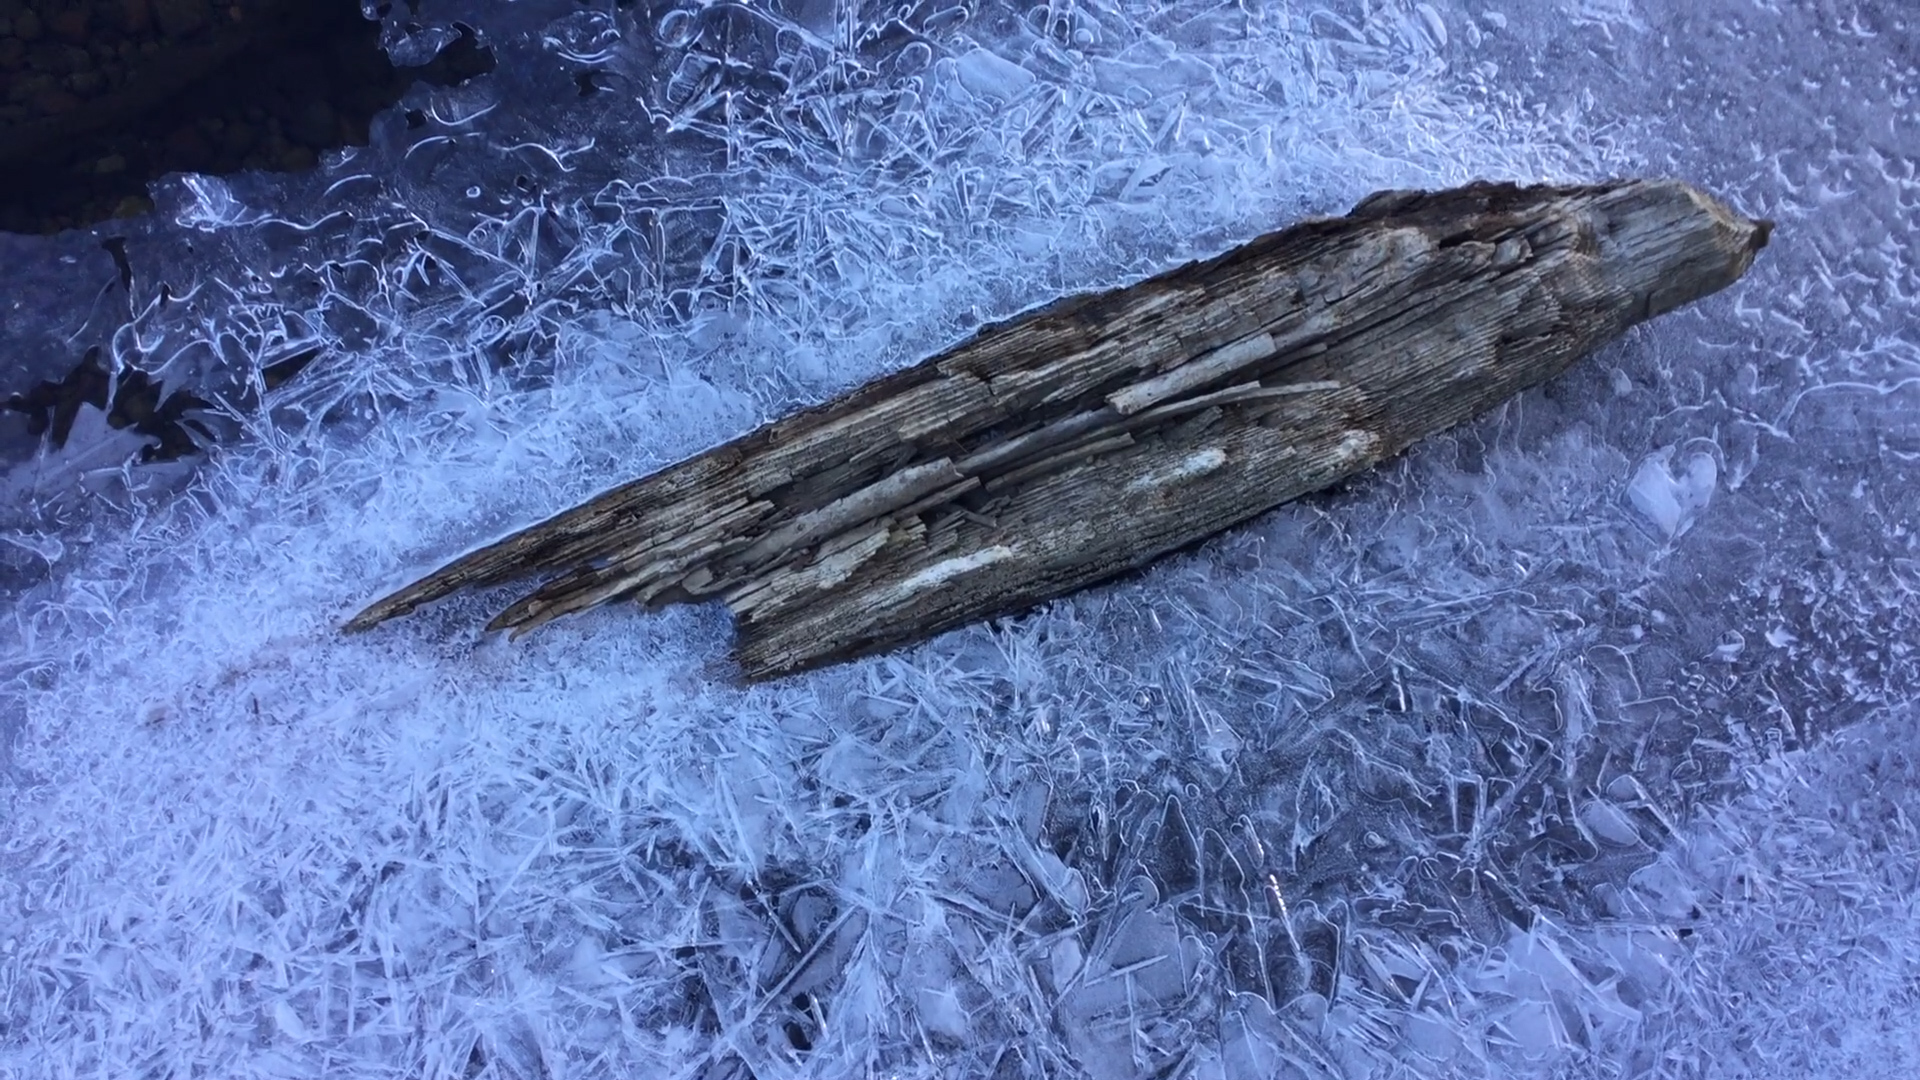 Frozen water and wood, in Sage Hen Creek. The complexity in the patterns, nearly overlooked, is astounding and beautiful.